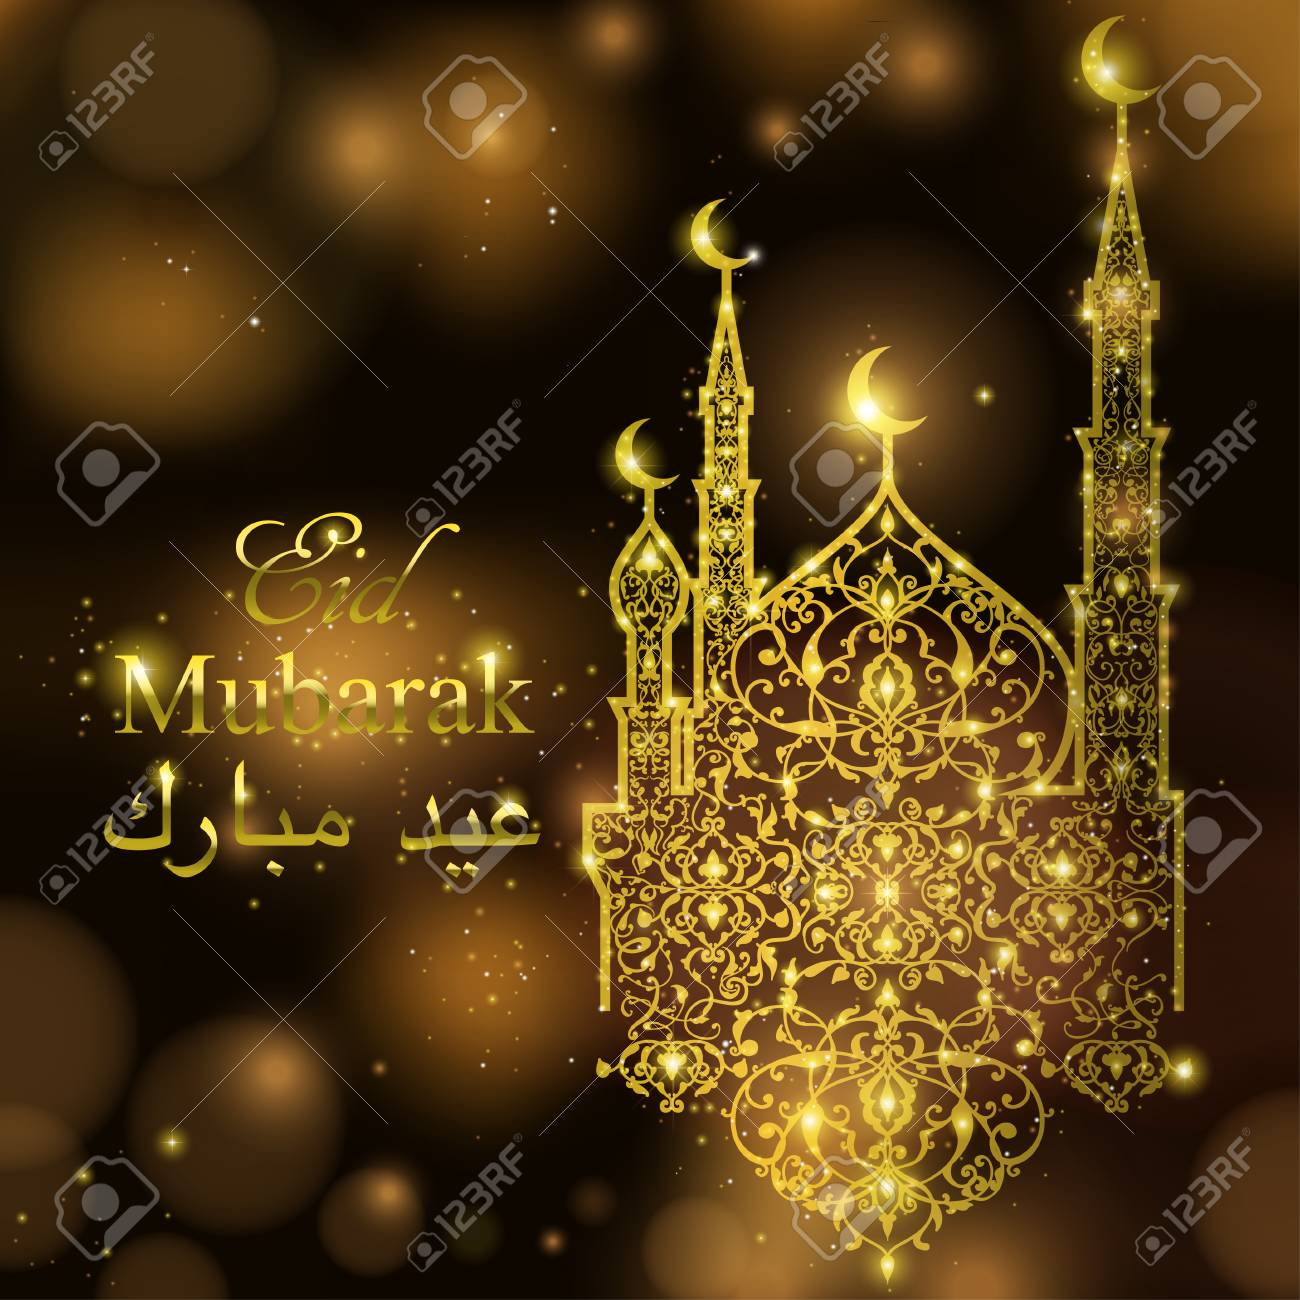 English Translate Eid Mubarak Beautiful Mosque On Sparkling Royalty Free Cliparts Vectors And Stock Illustration Image 57830031